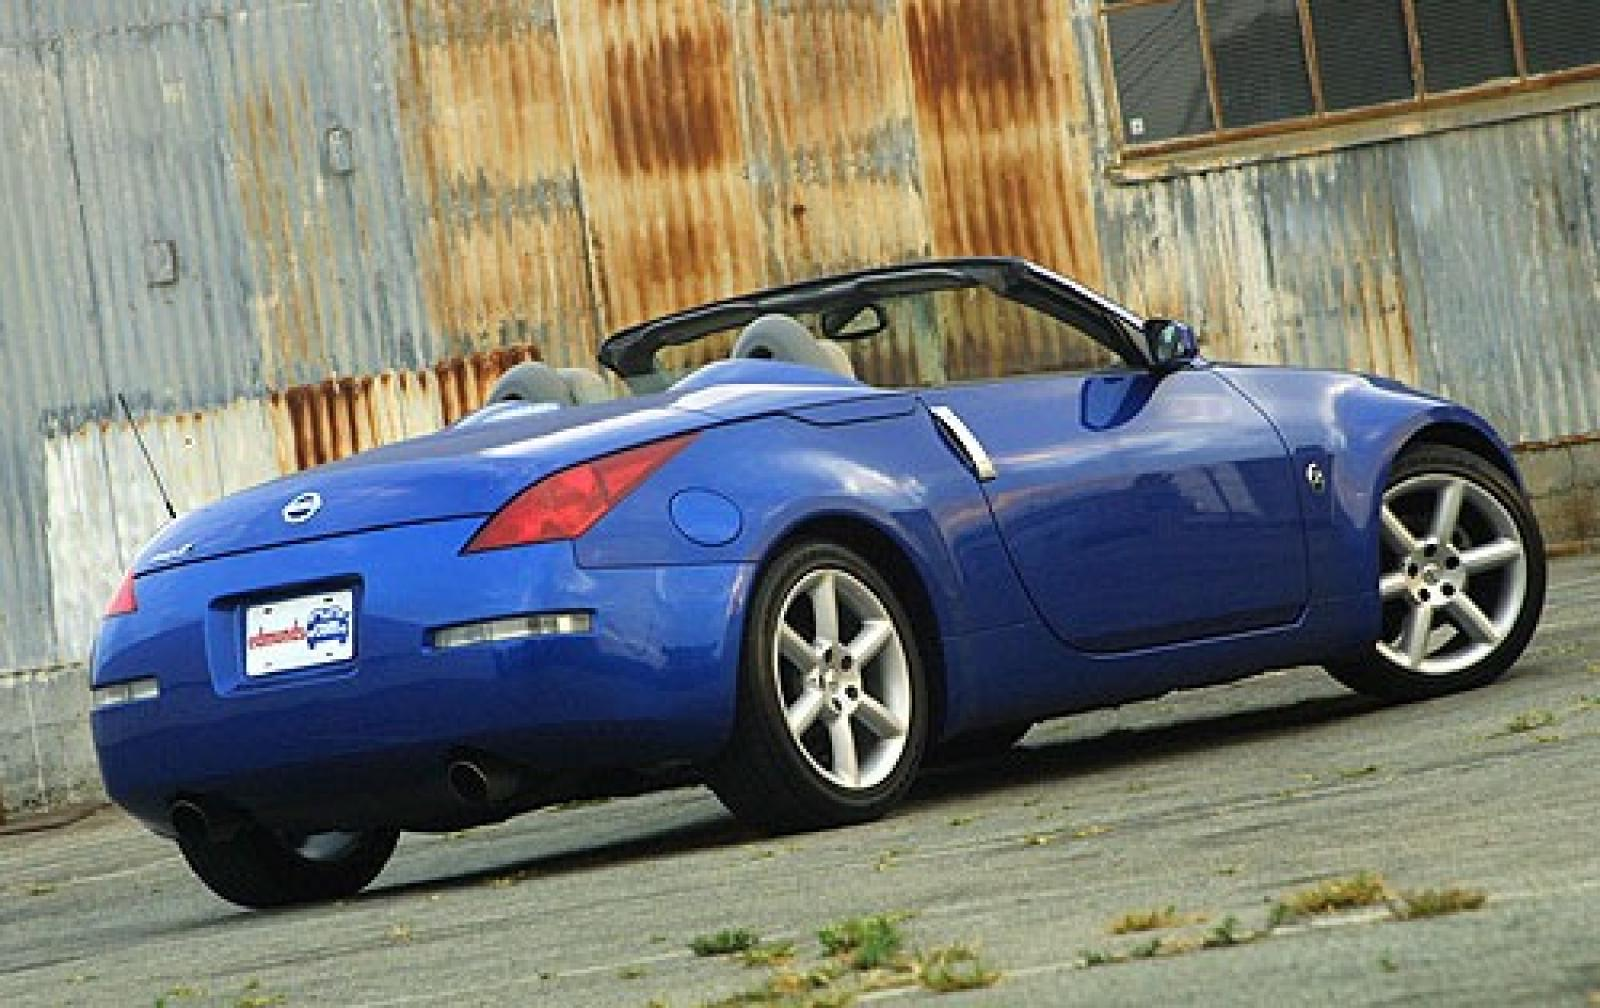 2005 nissan 350z information and photos zombiedrive 800 1024 1280 1600 origin 2005 nissan 350z vanachro Images